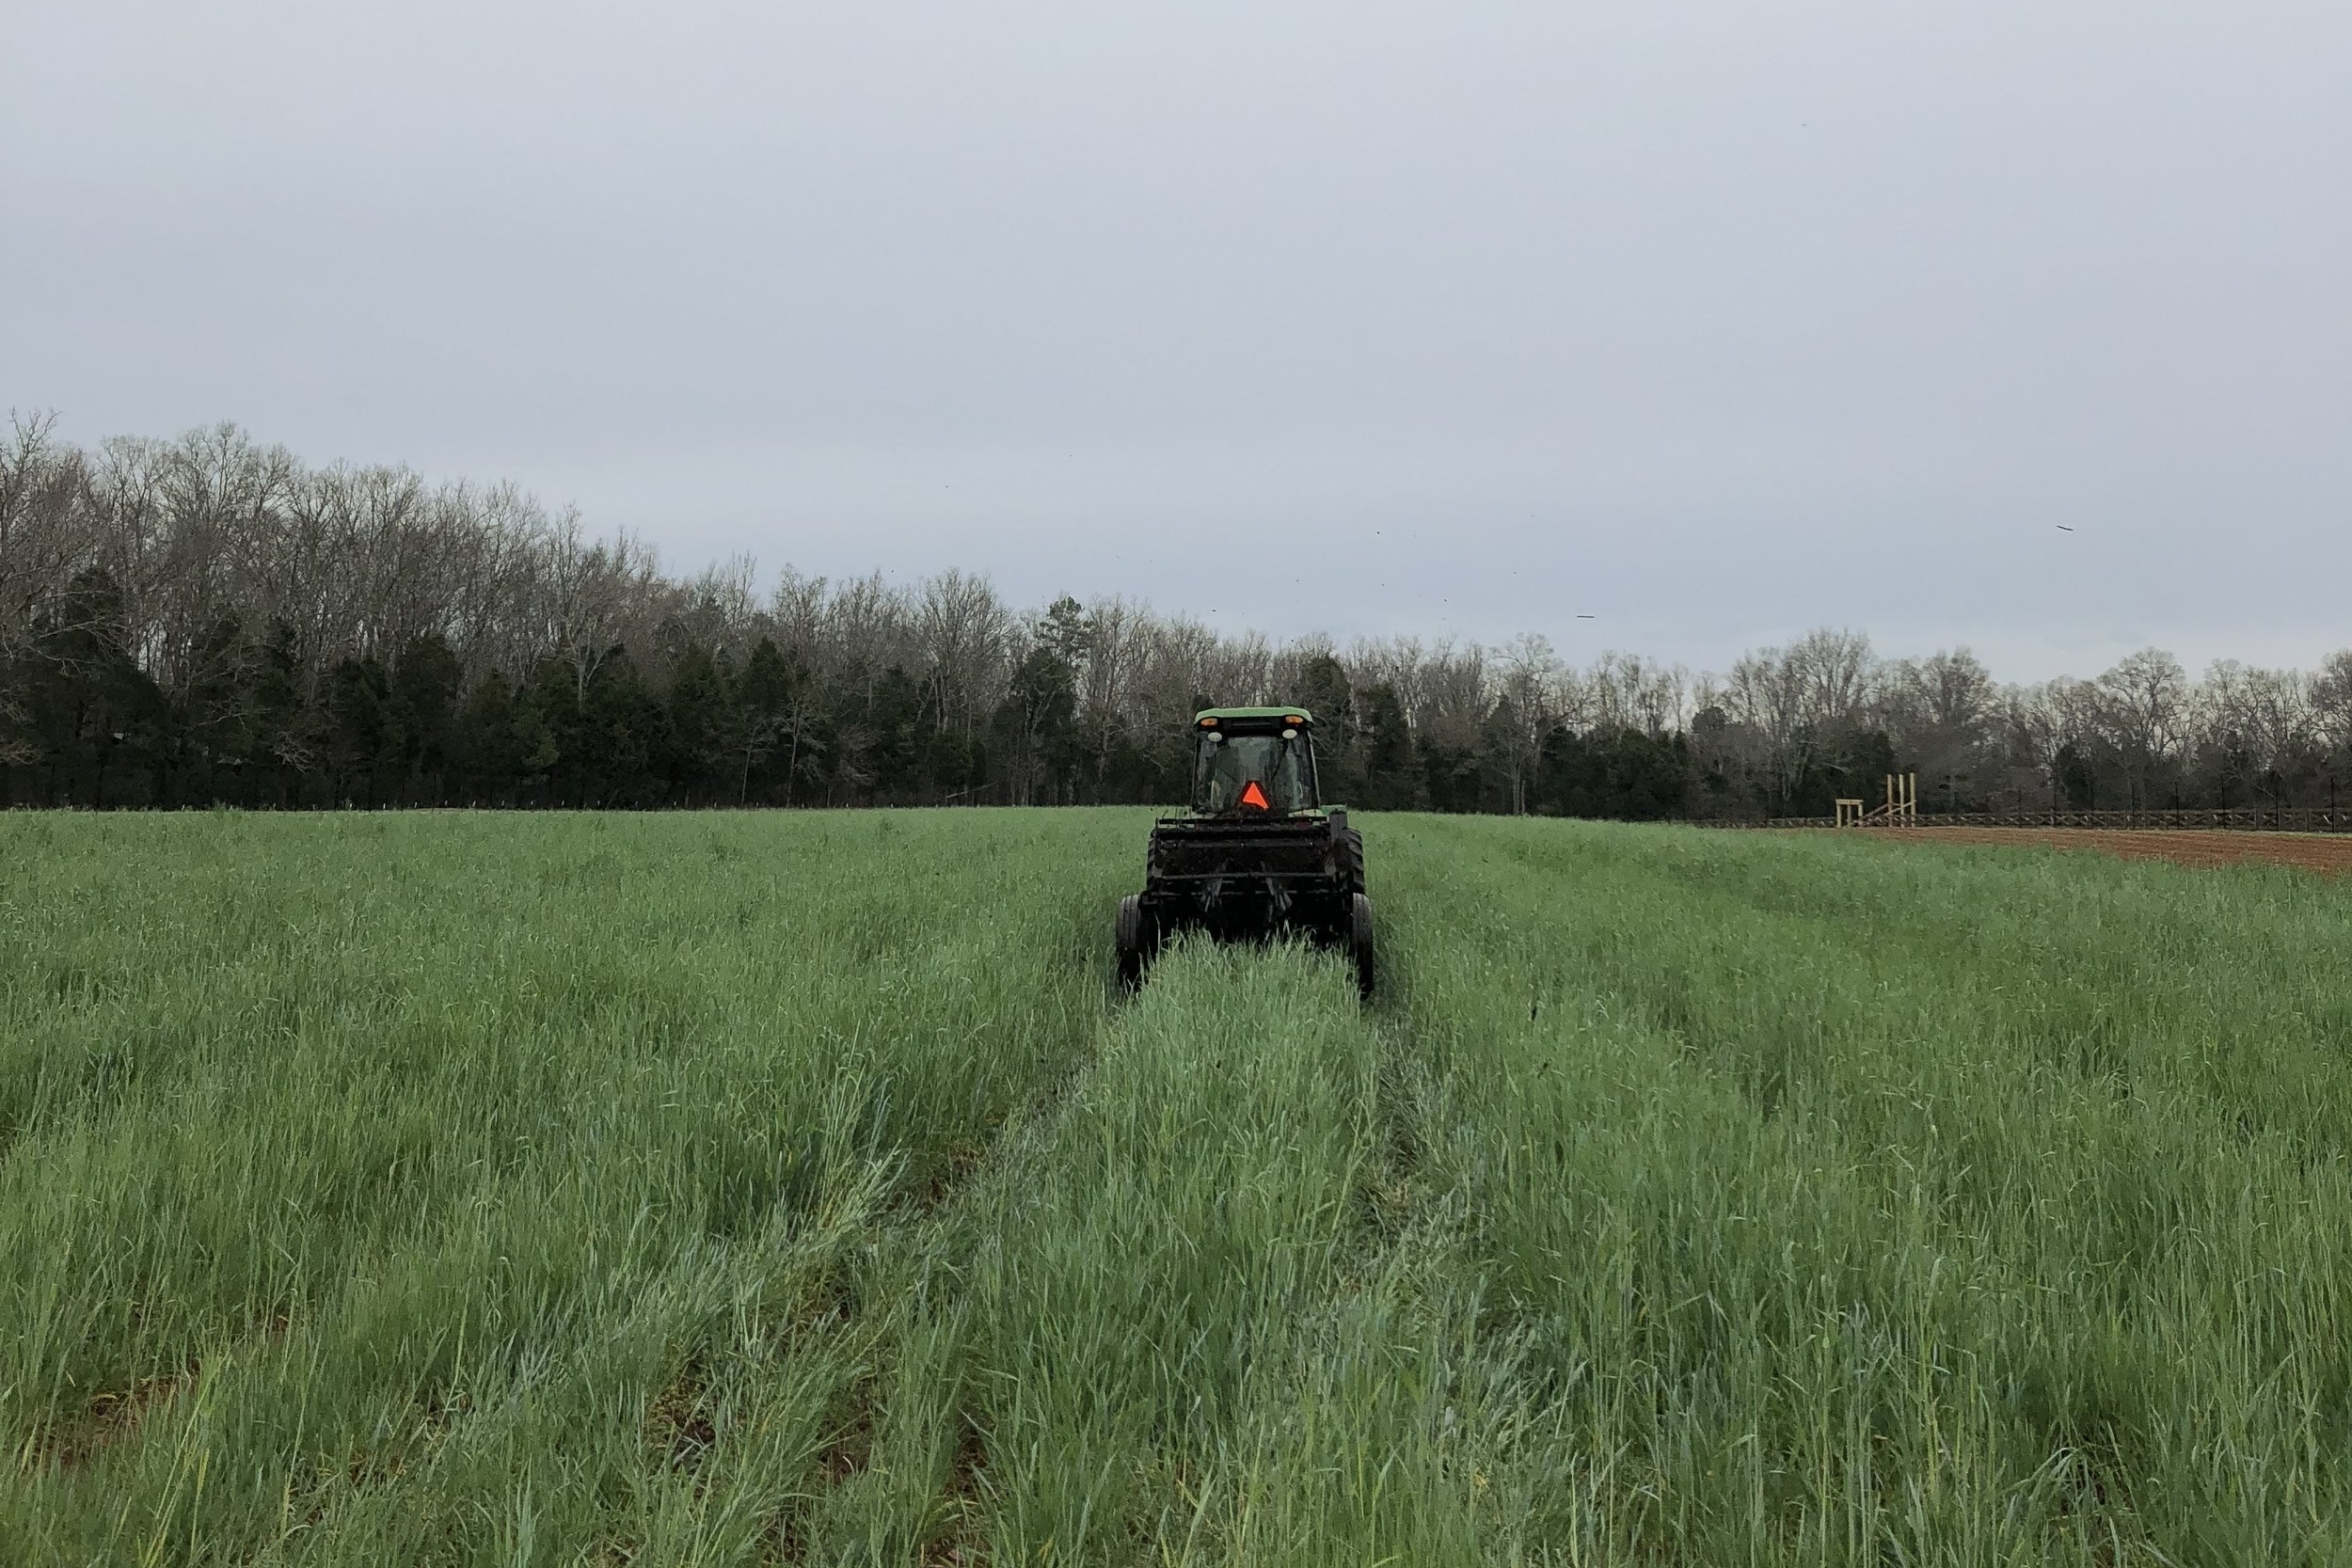 Advanced No-till Mulching and Crimping Techniques - BY SHAWN JADRNICEK